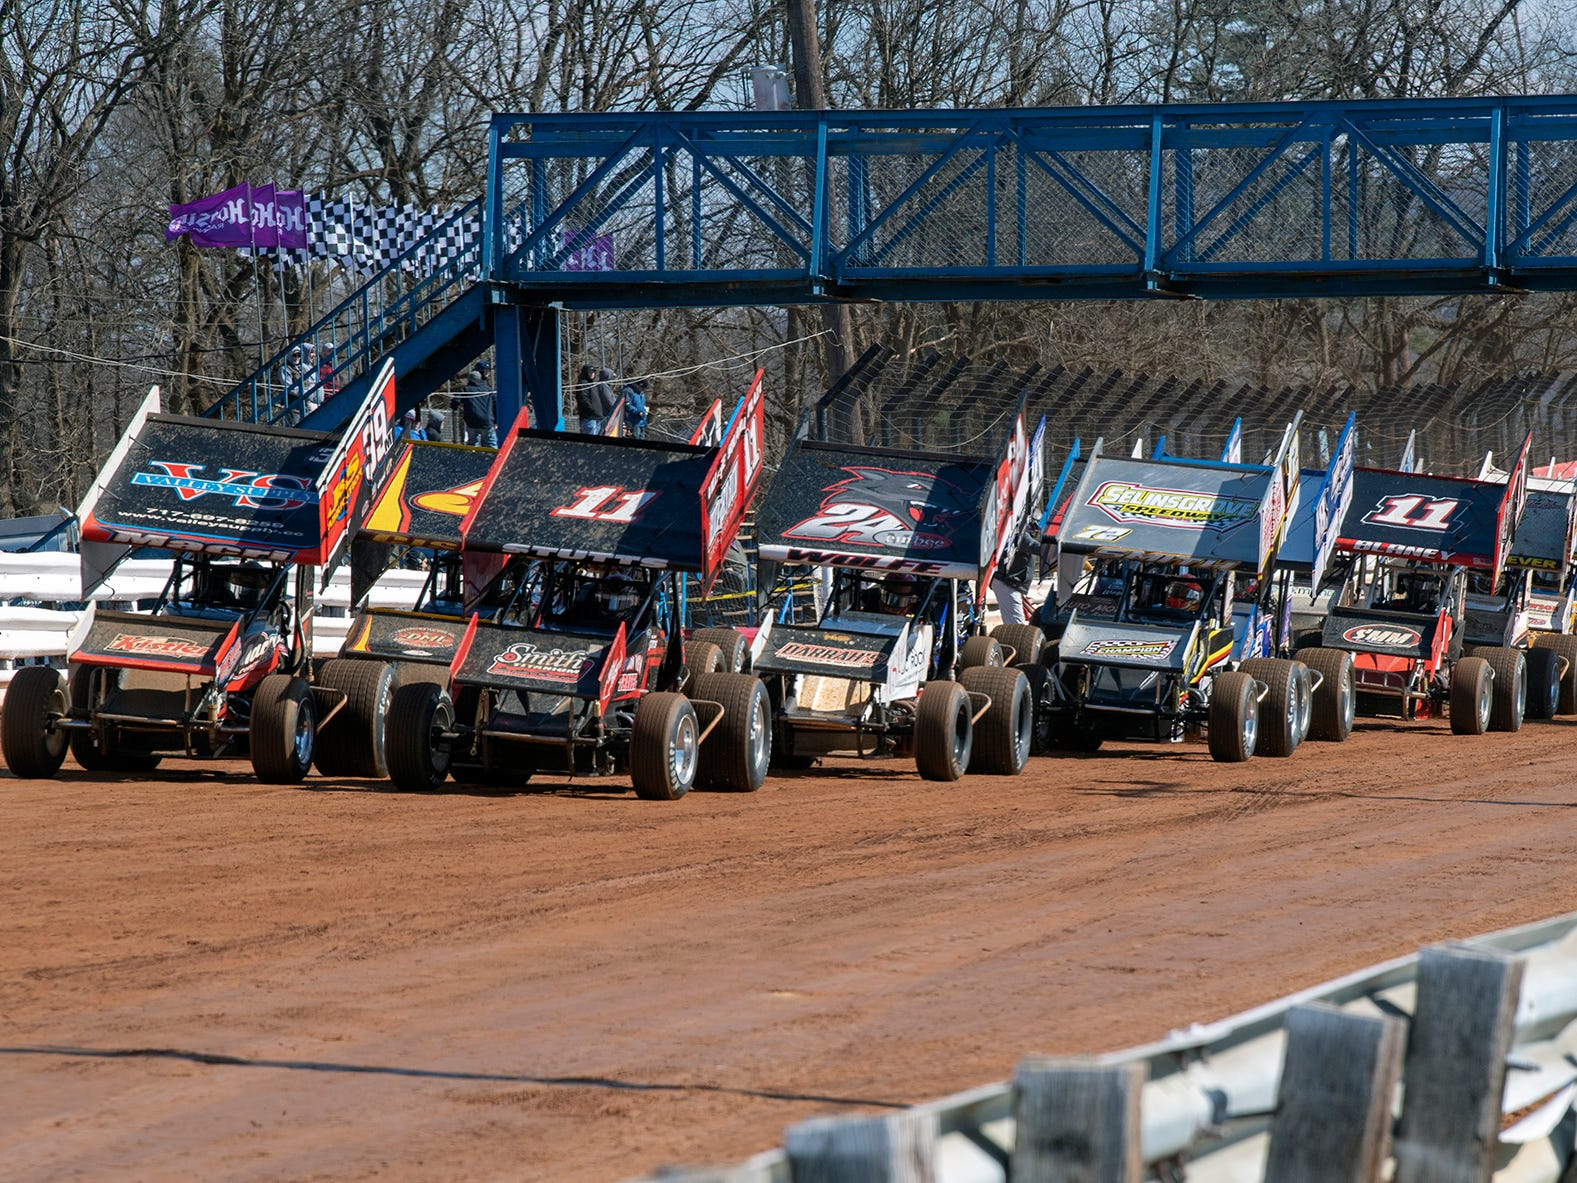 The cars get in line before the feature event at Williams Grove season opener for 410 sprints Sunday March 17, 2019.